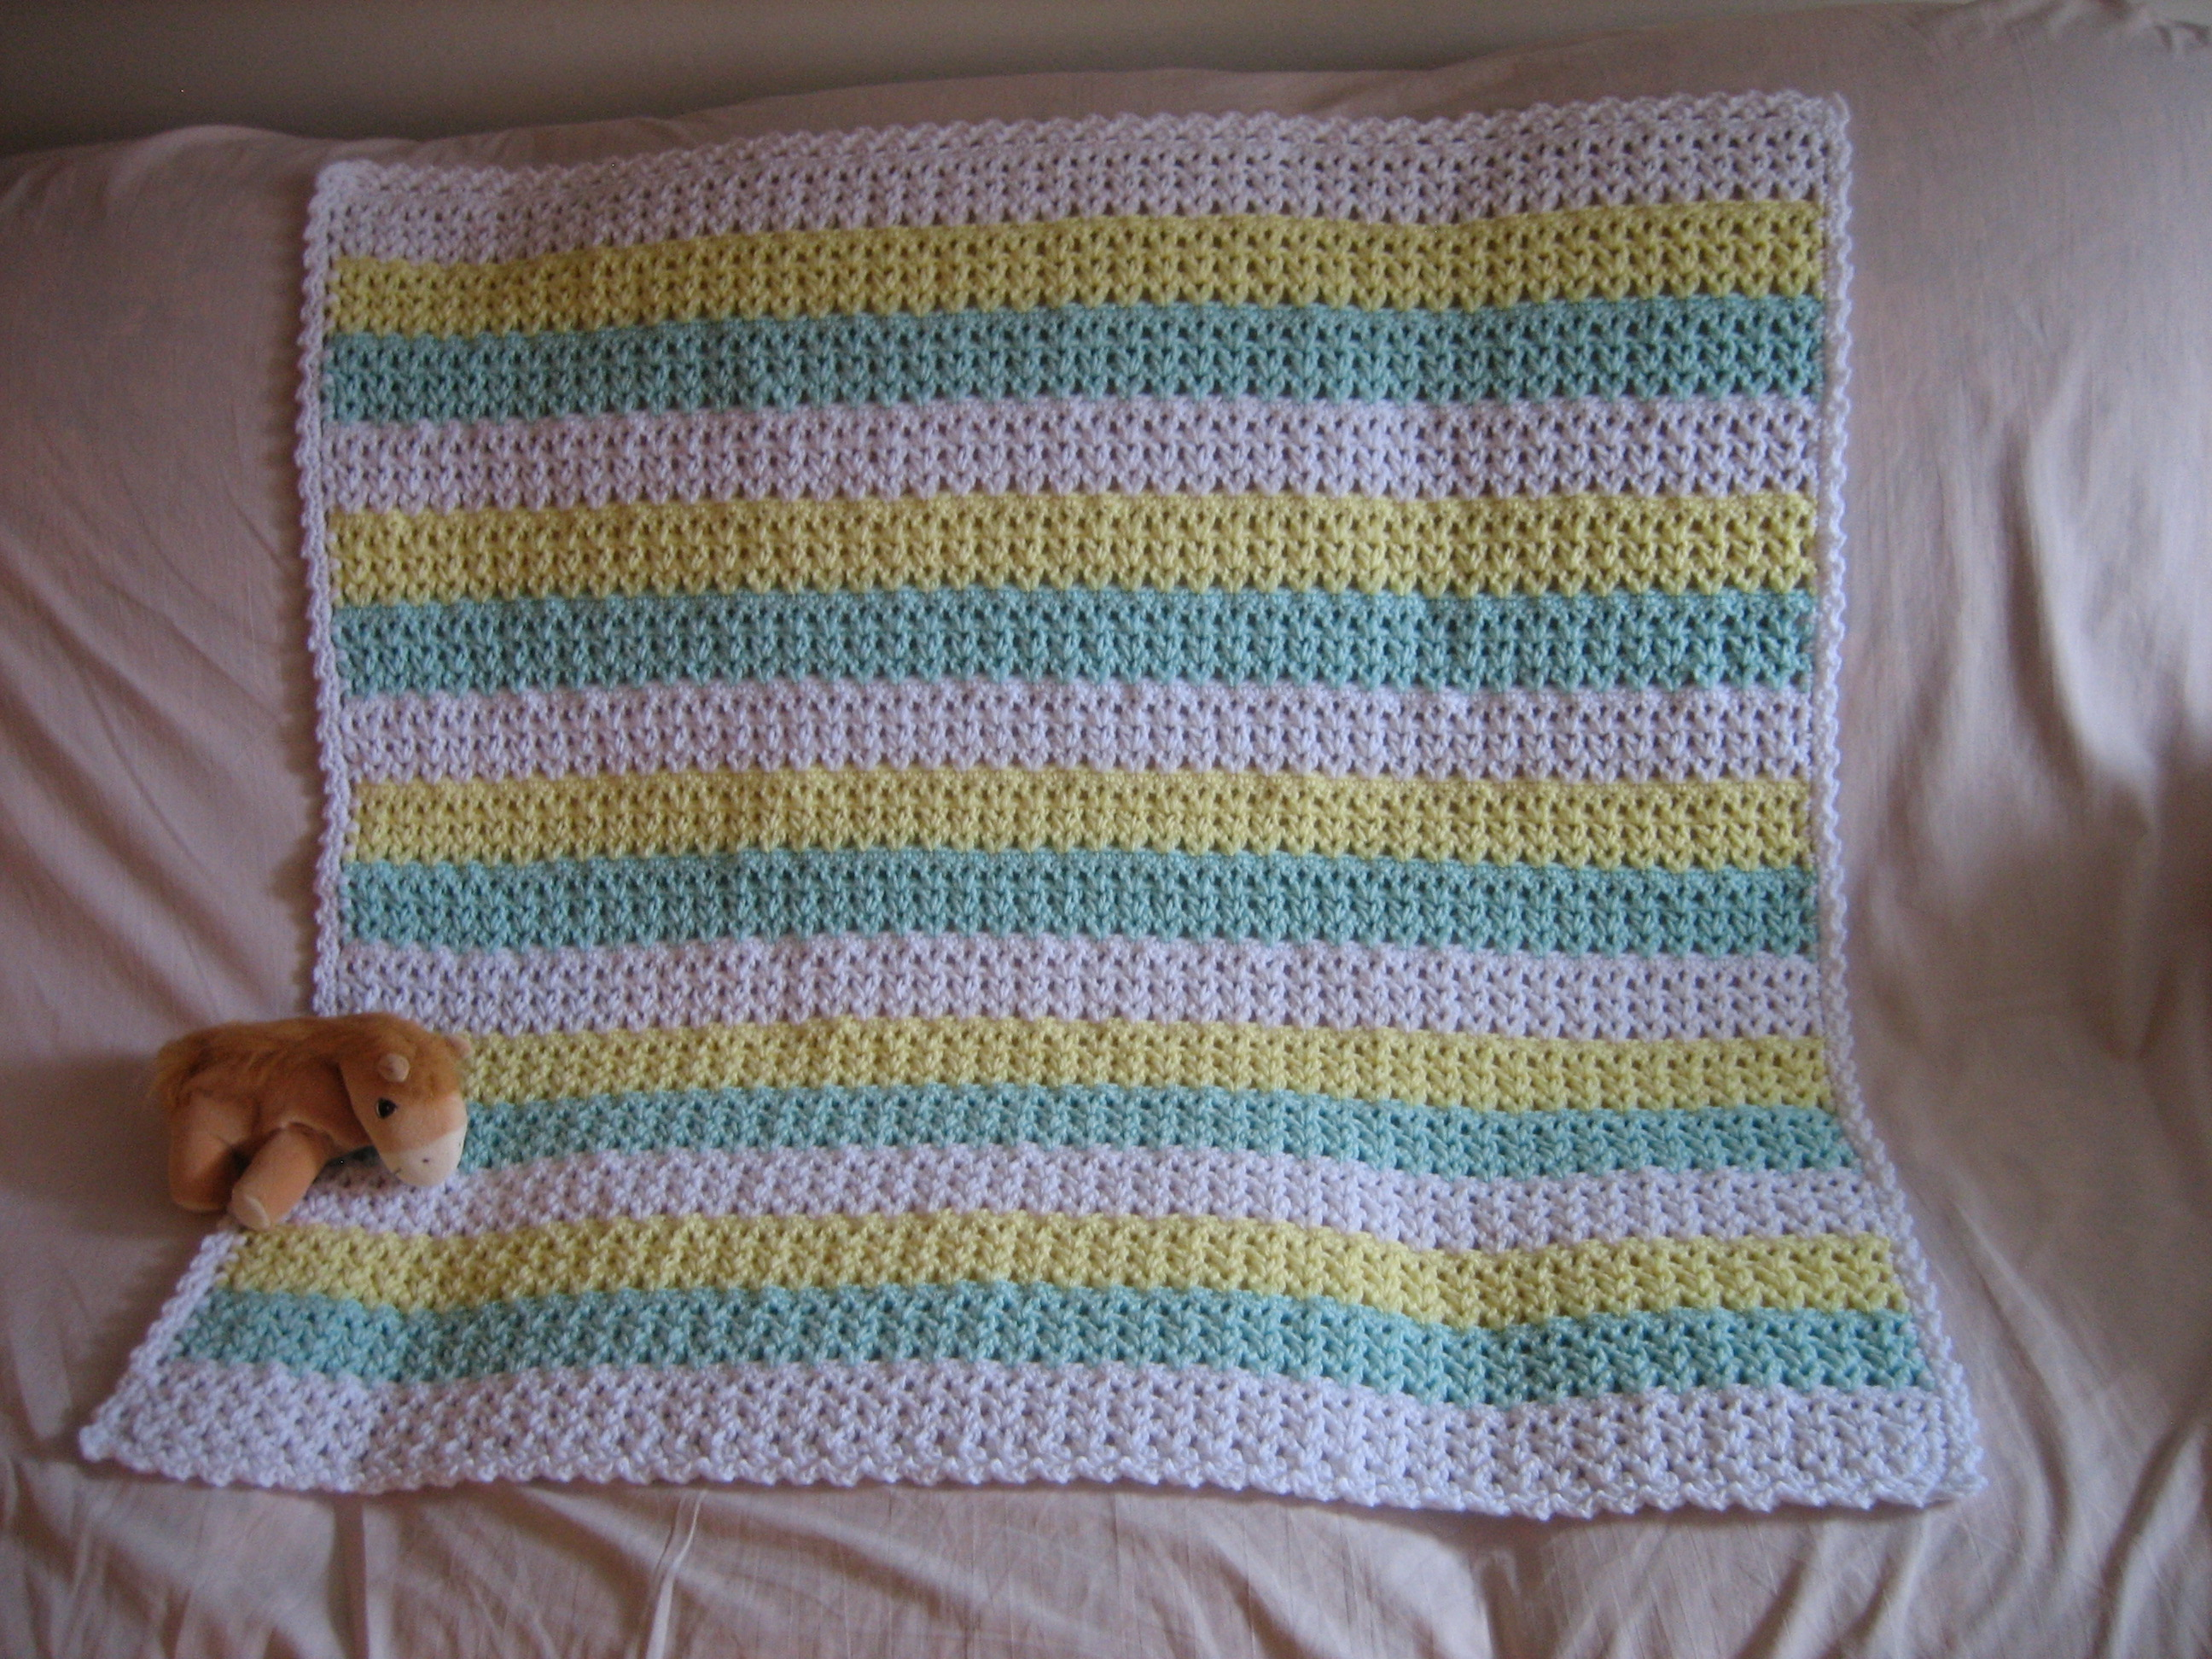 New Crochet Baby Afghan Patterns : Crochet Baby Blankets Patterns Patterns Gallery